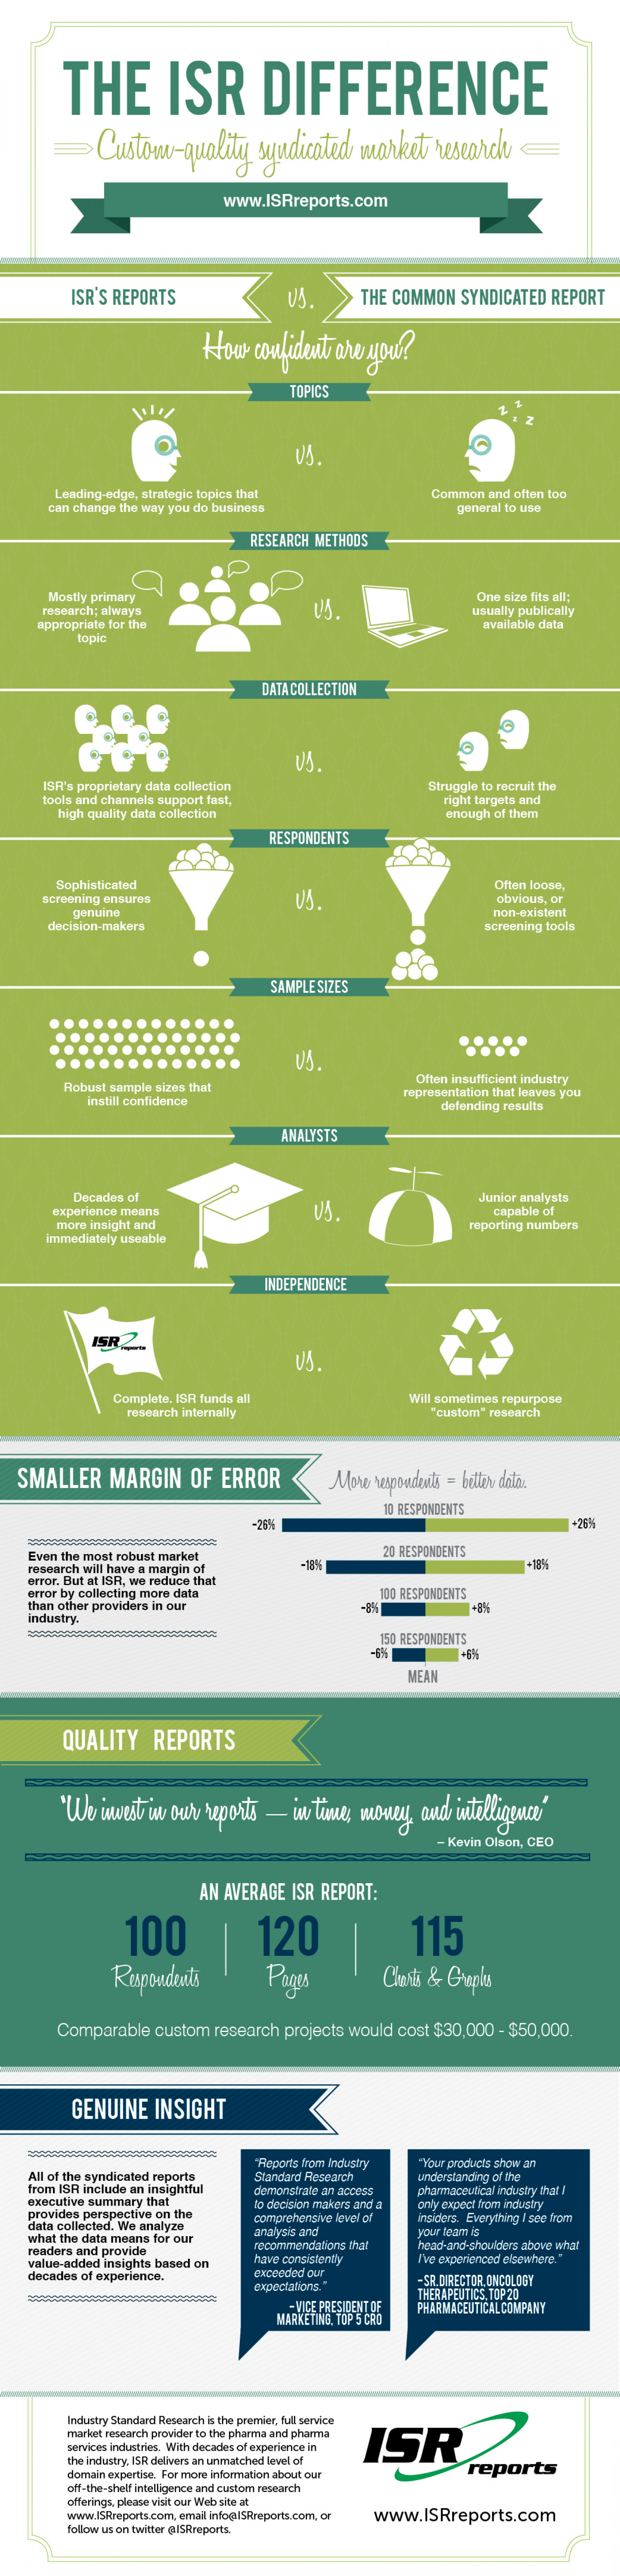 The ISR Difference Infographic